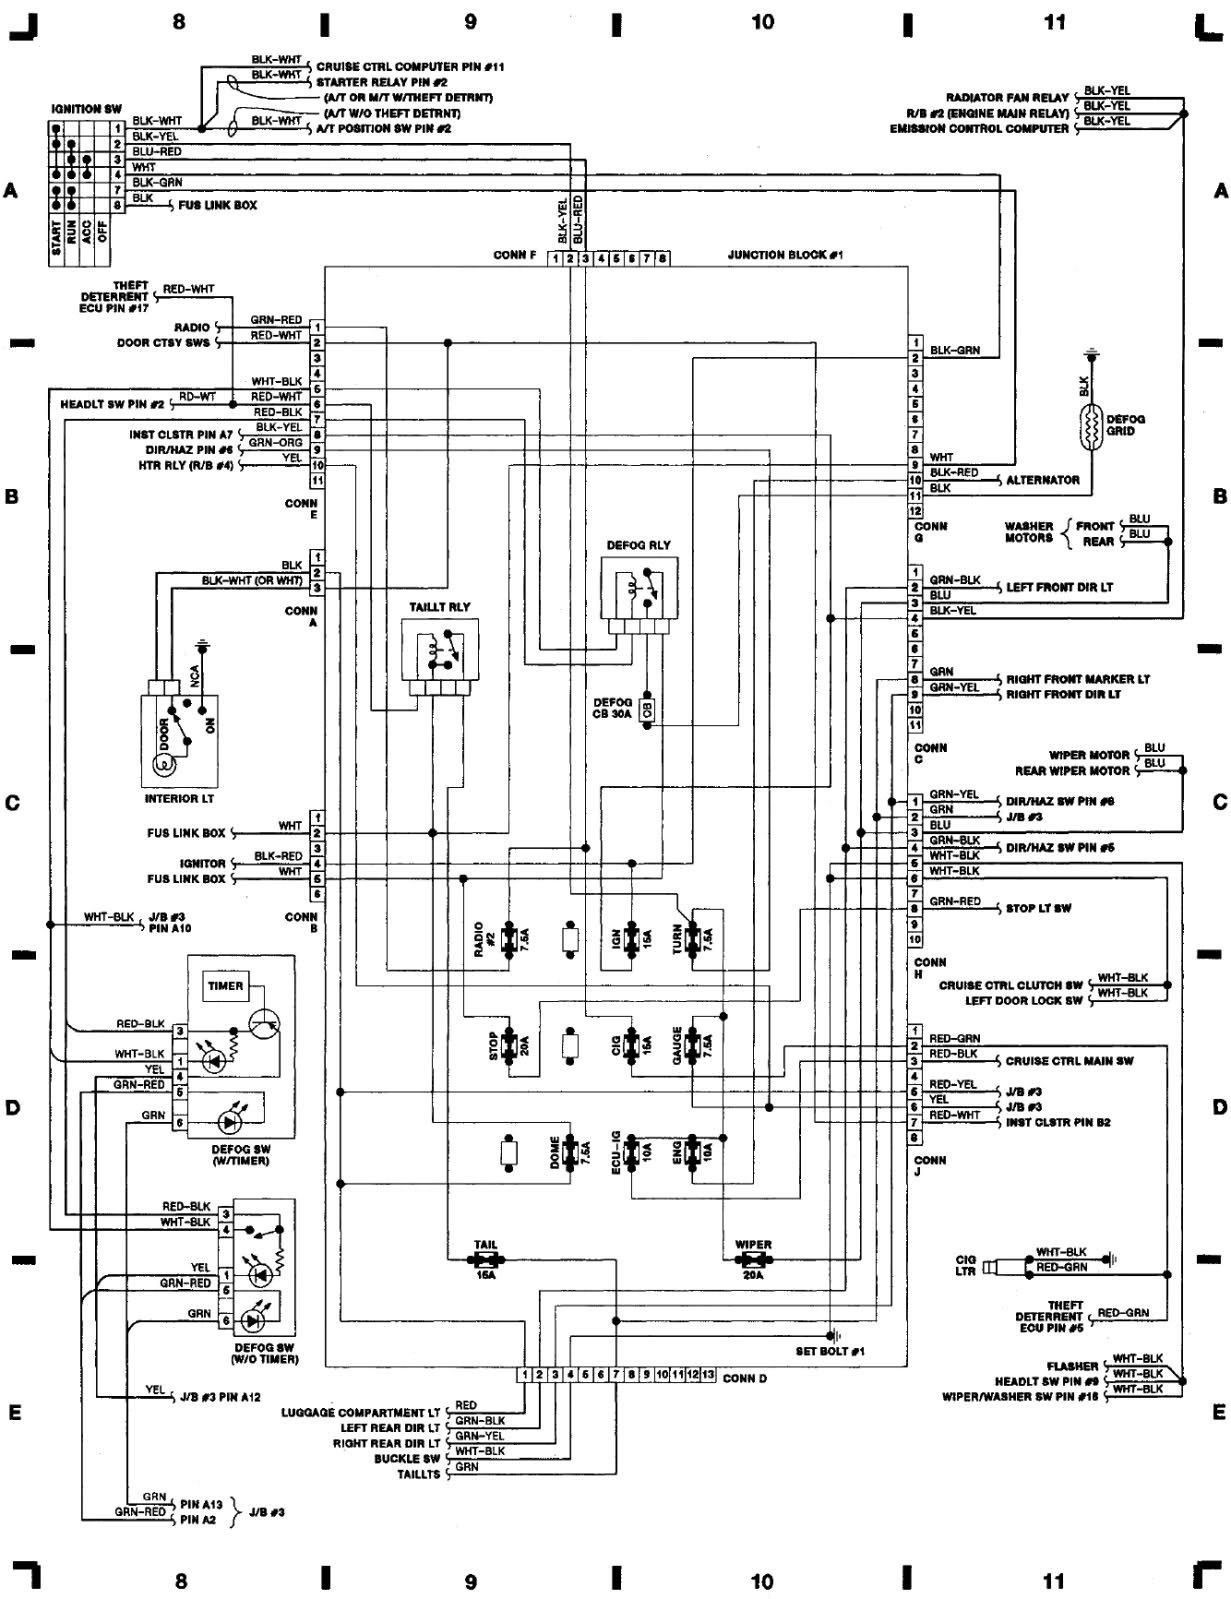 Toyota Celica Engine Diagram Echo Wiring Diagram Of Toyota Celica Engine Diagram